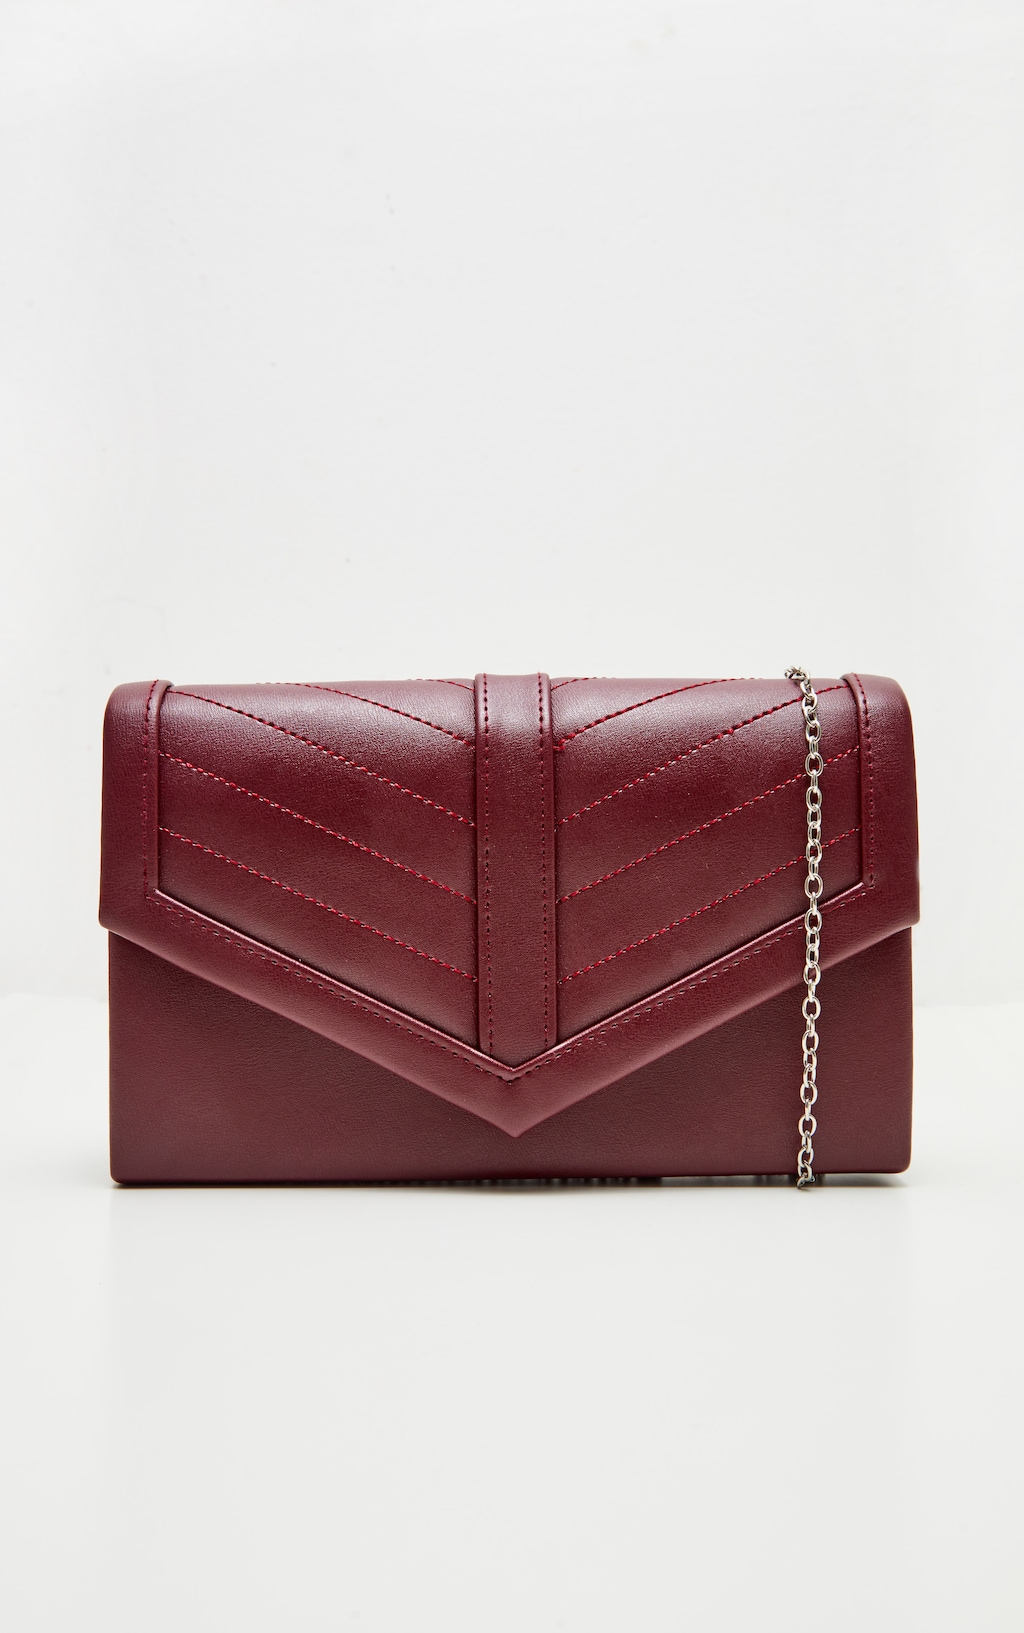 0583db98b5 Burgundy PU Quilted Chain Cross Body Bag image 1